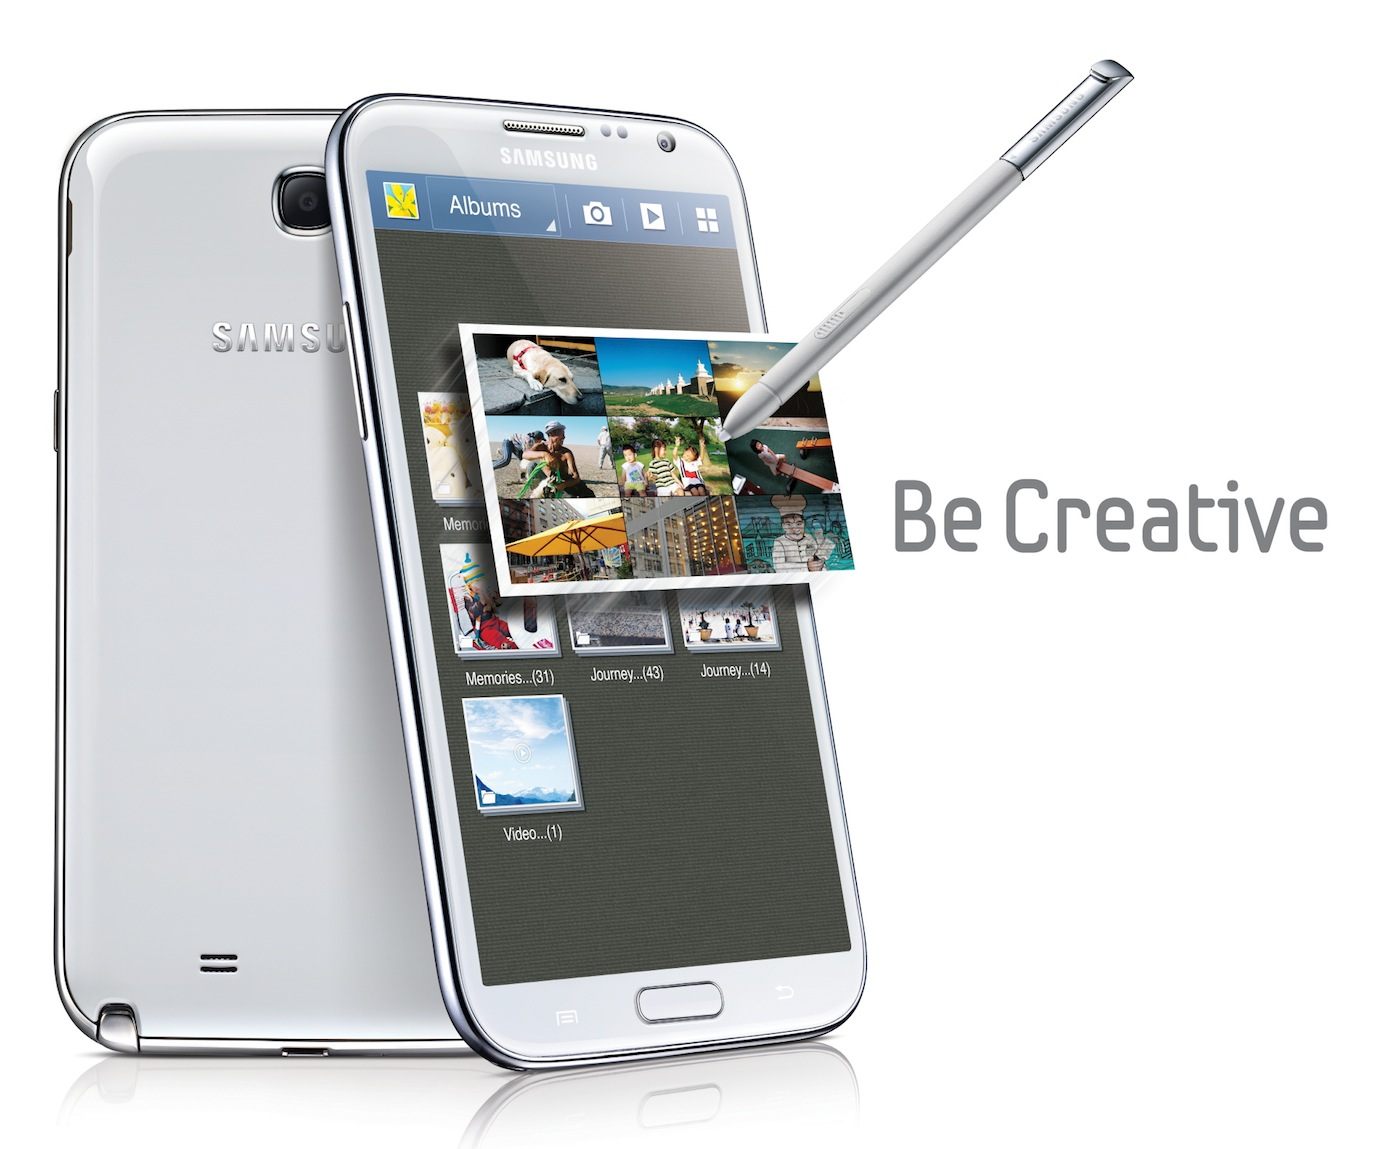 Meet The Galaxy Note II, Samsung's Most Important Phone Yet | TechCrunch